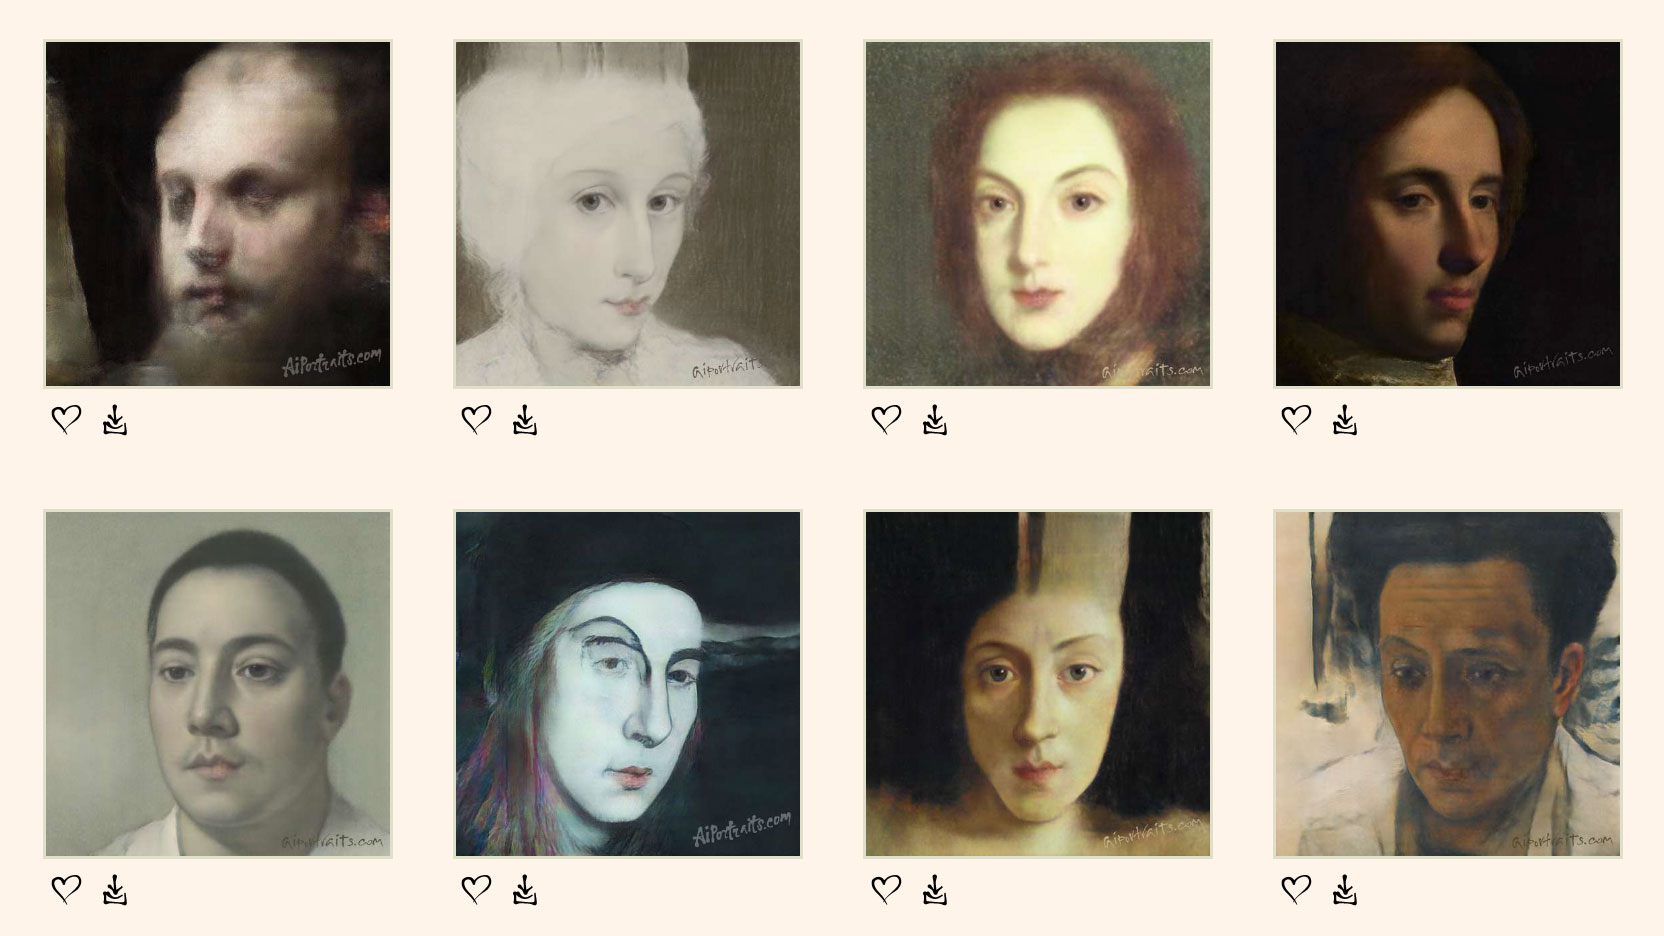 Breathtaking tool will find your face's art style | Creative Bloq